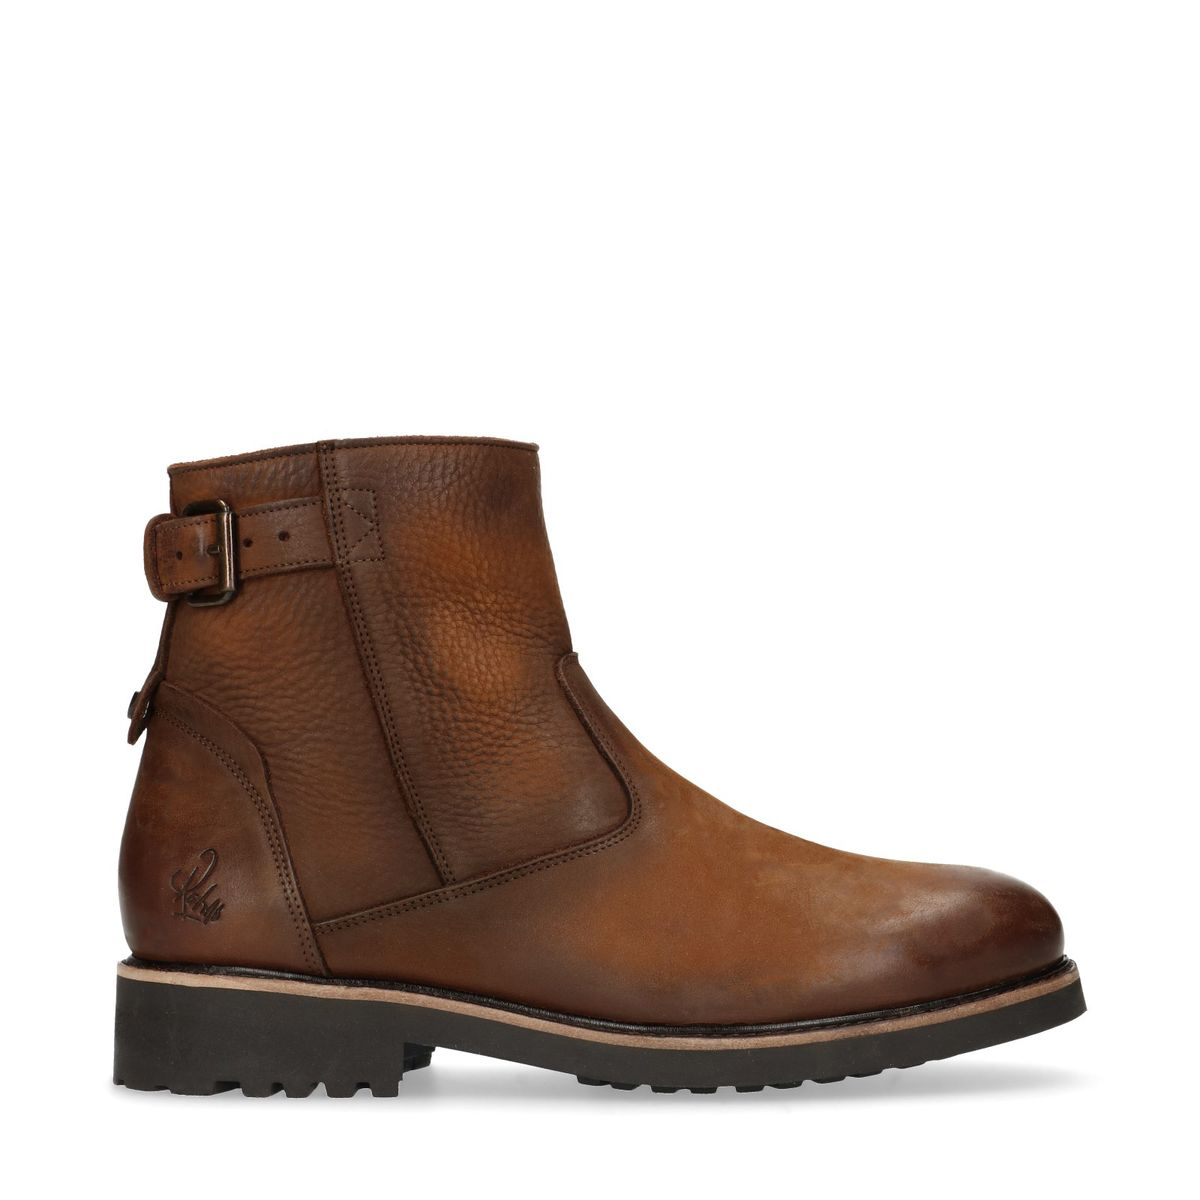 REHAB Regan Boots - marron (Maat 41)